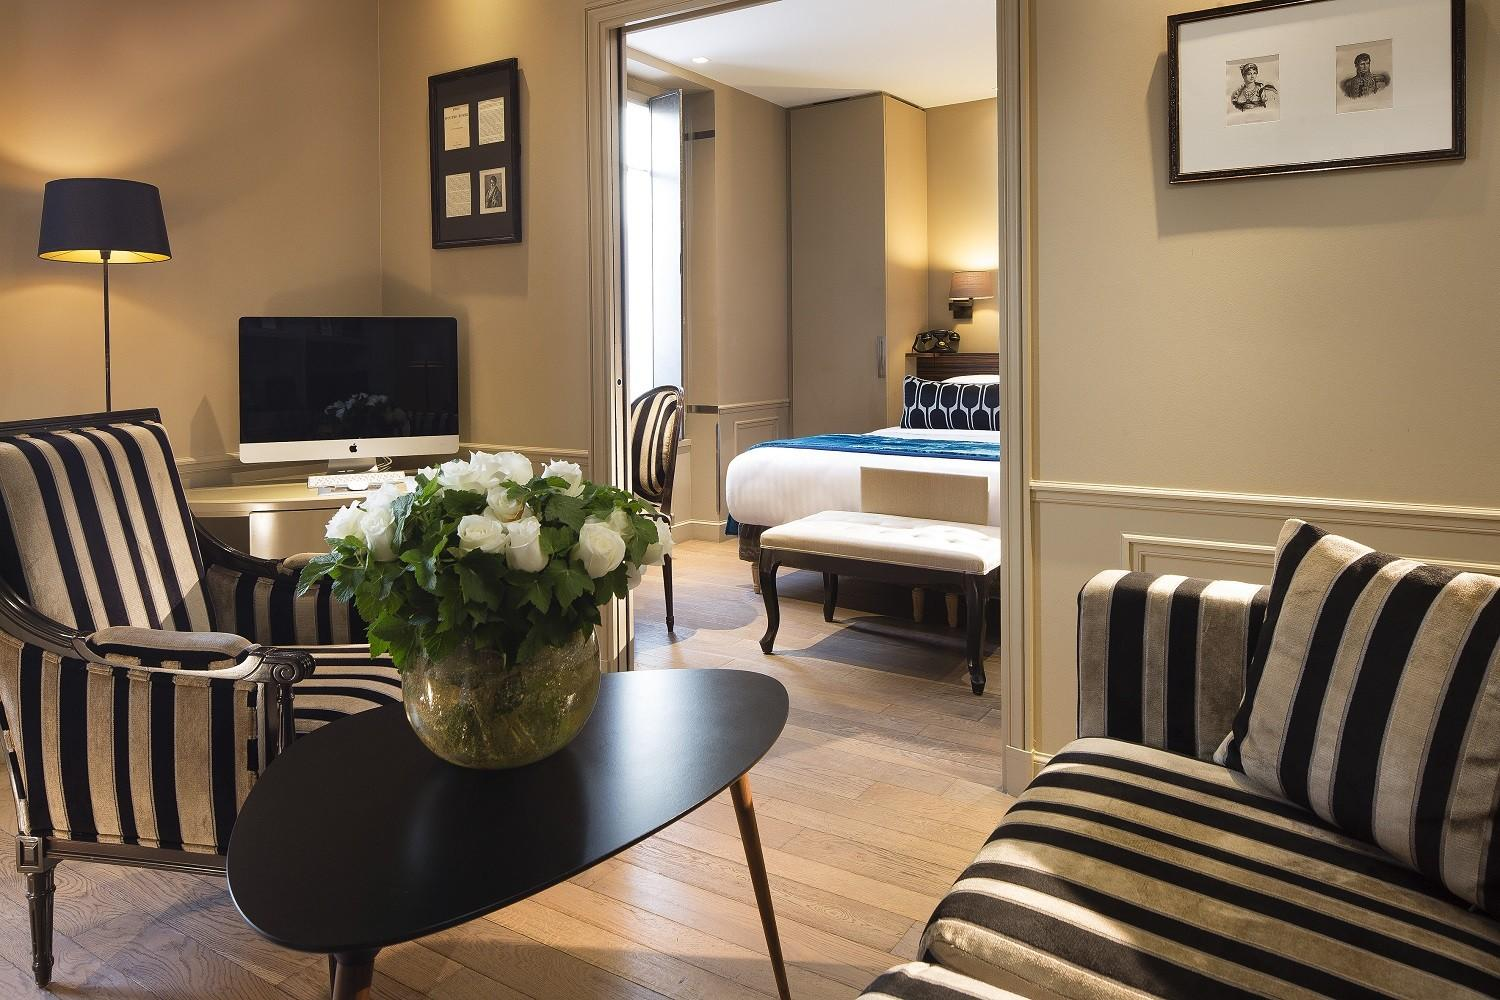 Photo gallery hotel and spa la belle juliette paris for Hotel design paris spa